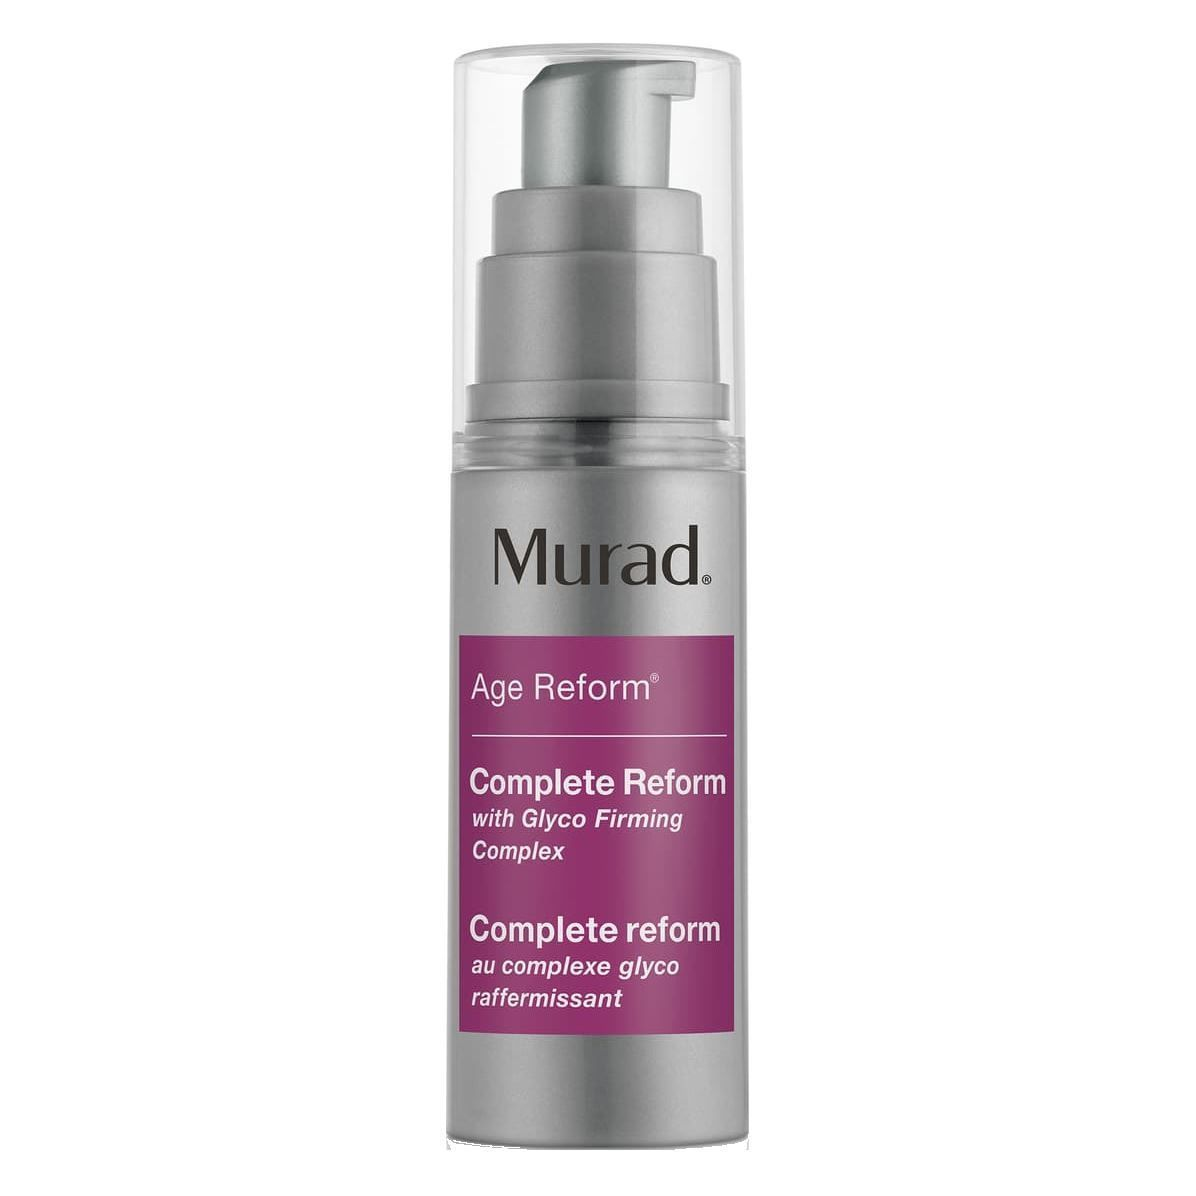 Age Reform Complete Reform with Glyco Firming Complex